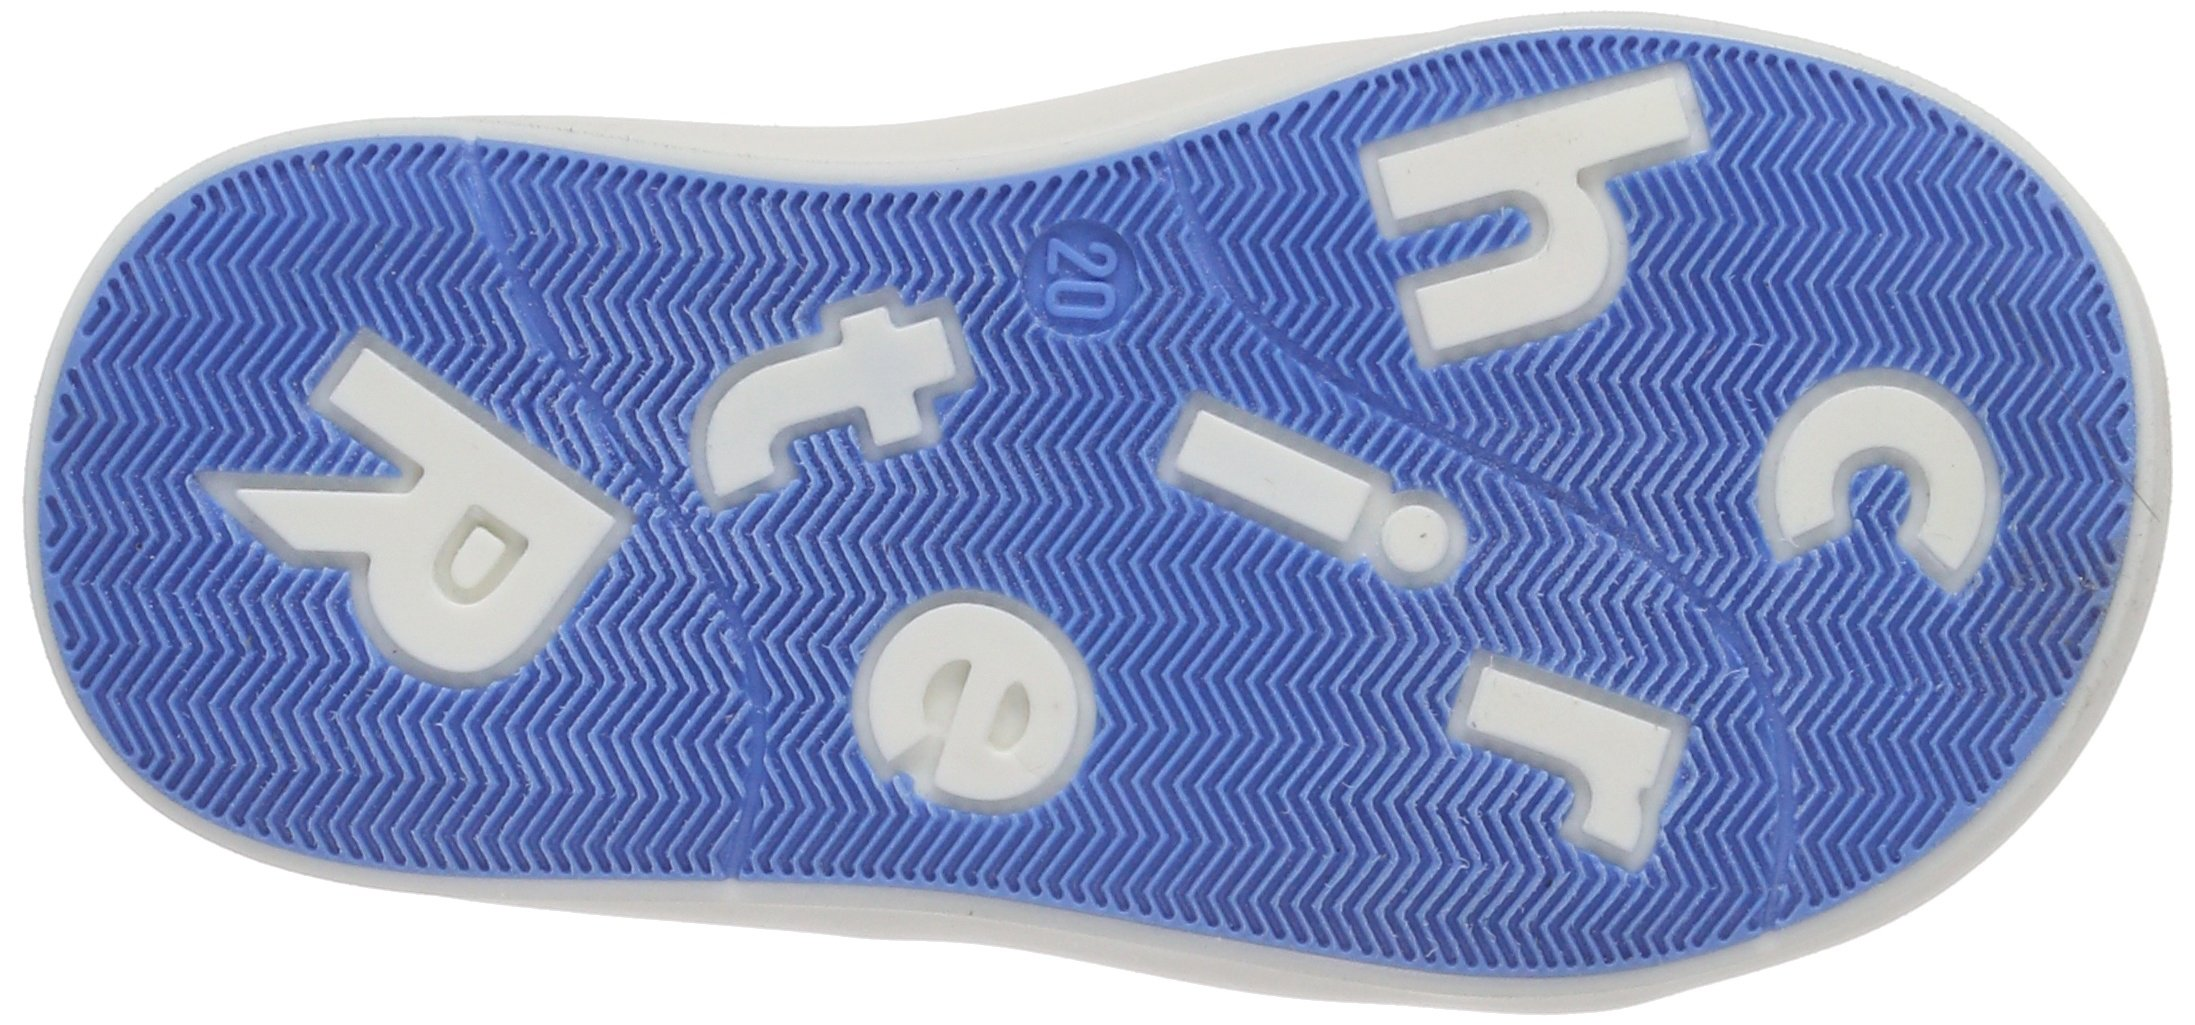 Richter Kinderschuhe Boys' Jimmy Derbys, Blue (Pacific/Menta 6701), 7.5 UK by Richter Kinderschuhe (Image #3)